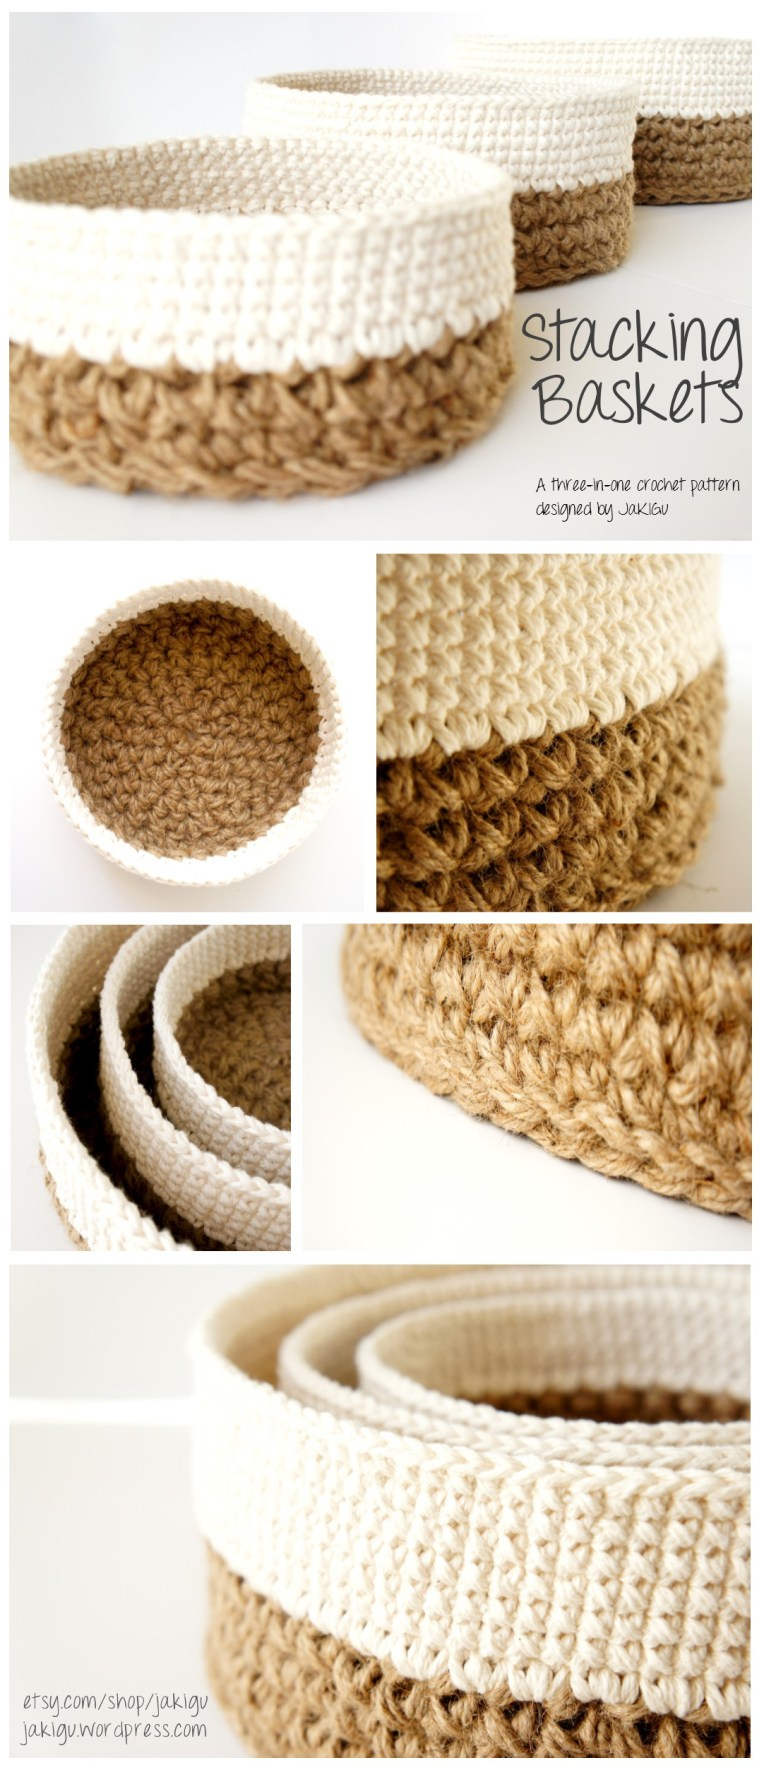 Stacking Baskets Crochet Pattern Designed by JaKiGu